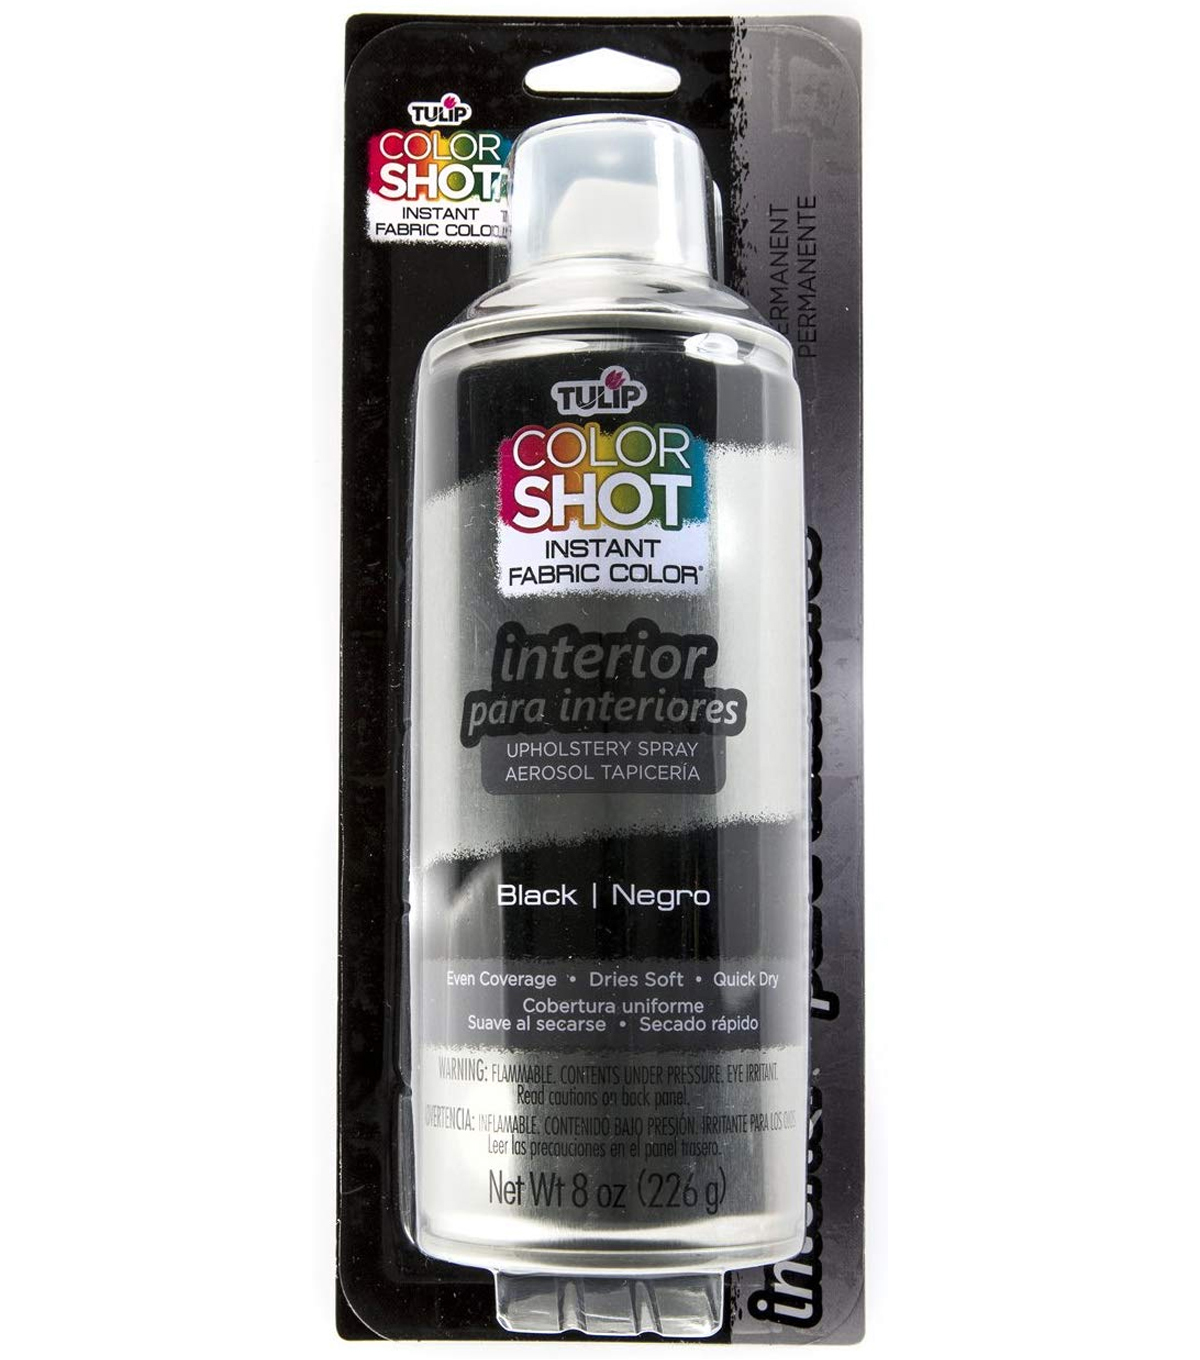 Tulip ColorShot 8oz Indoor Upholstery Spray, Black